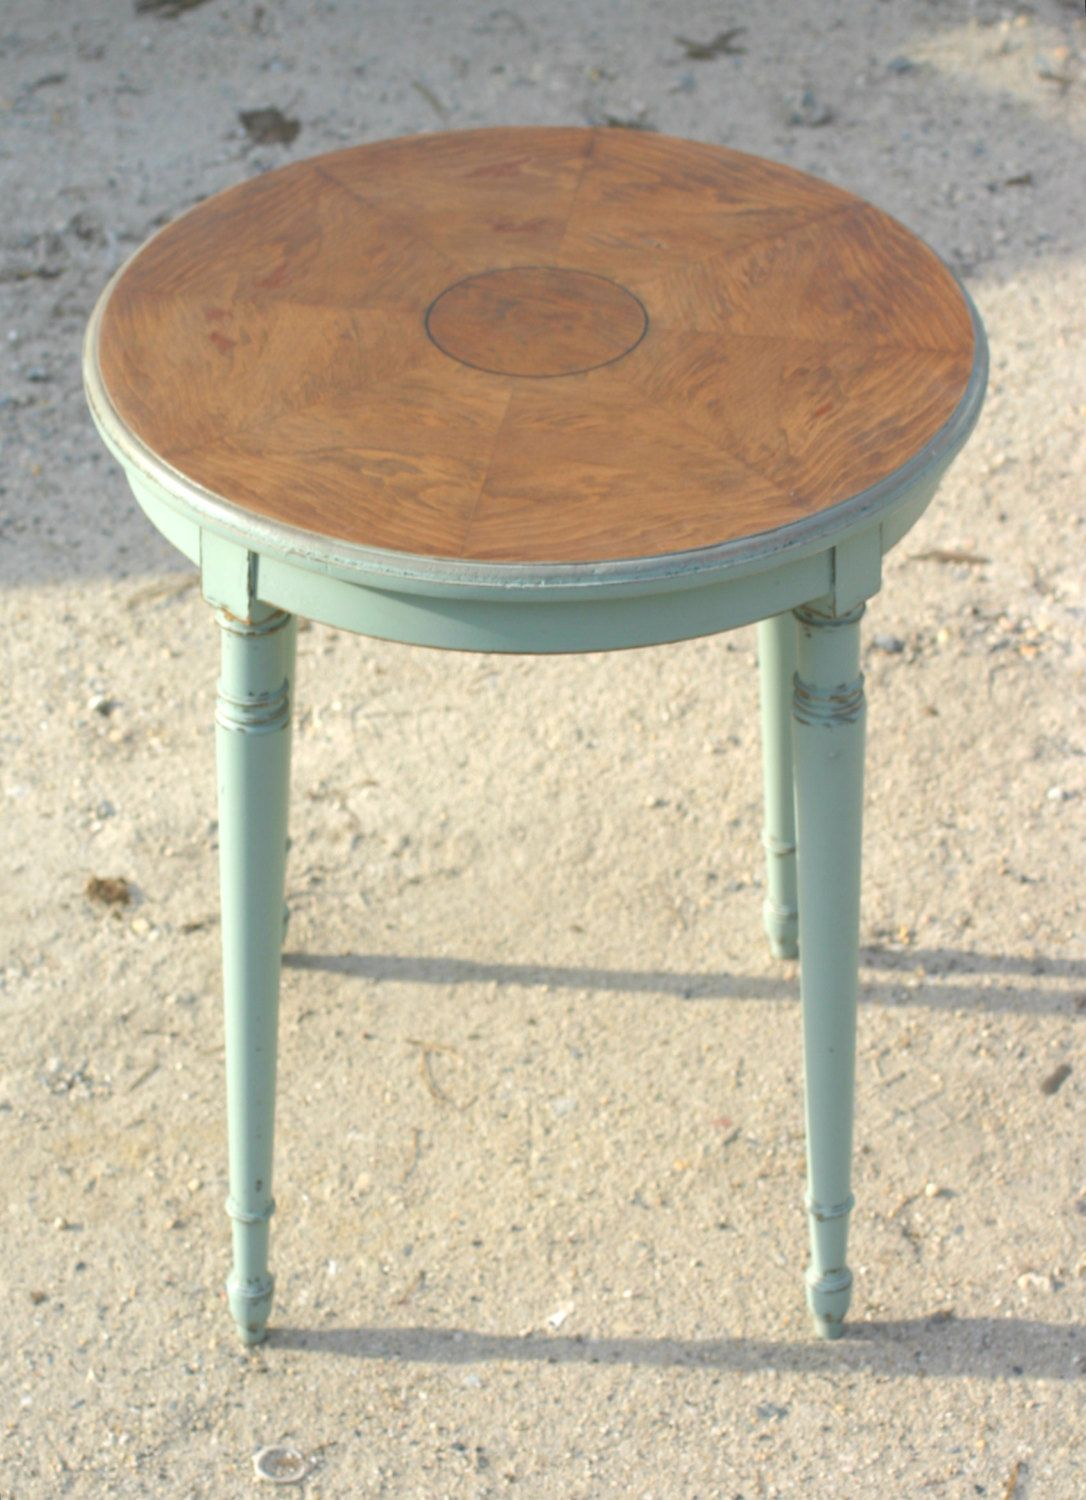 round accent table blue inlaid wood distressed small side sweetiesattic etsy charcoal grey coffee chrome glass end tables vita silvia slim modern living room thomasville plans